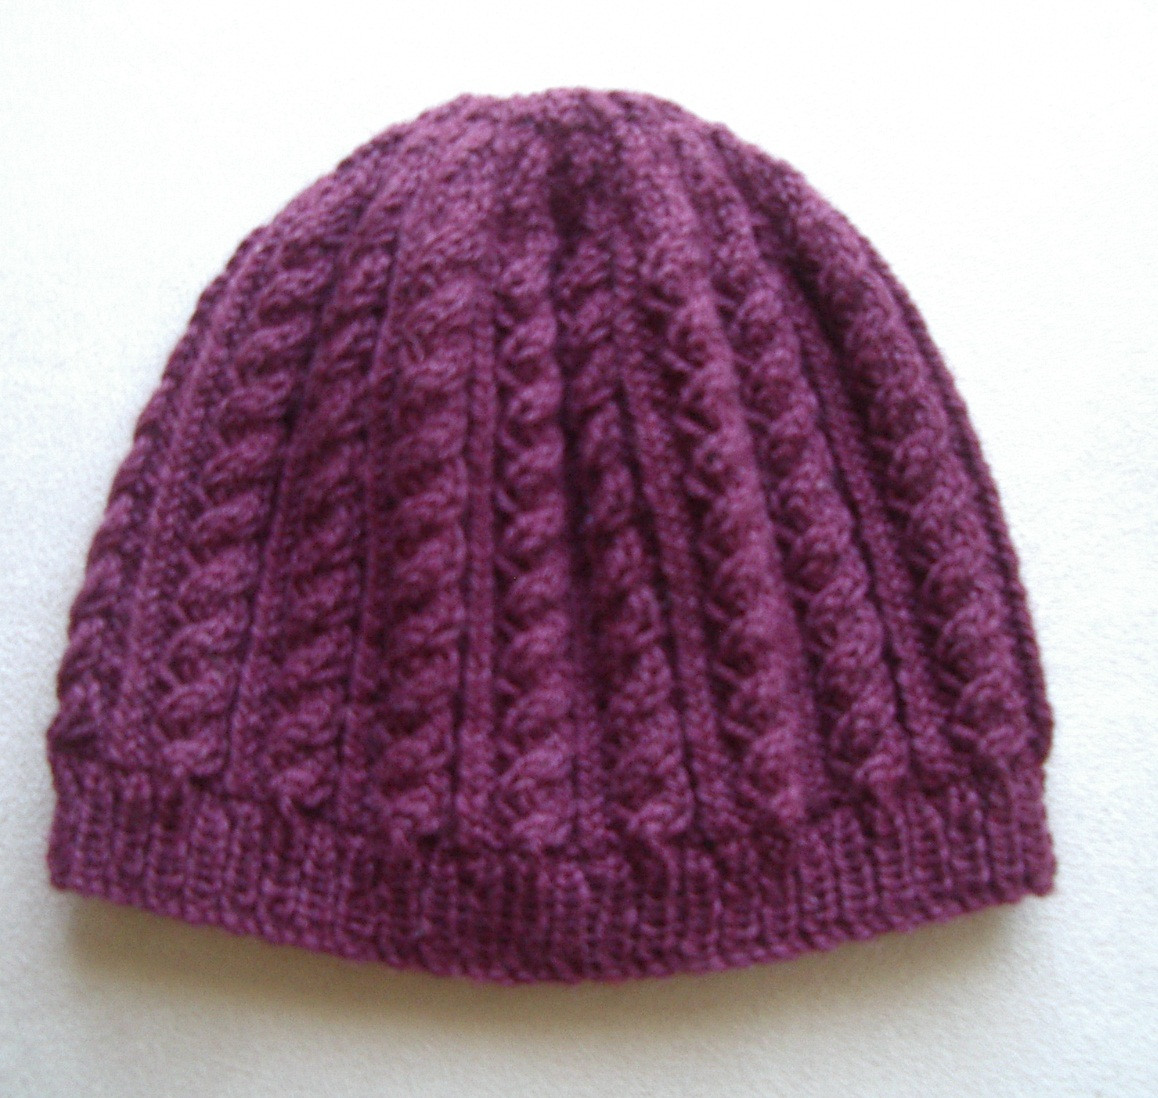 Beanie Hat Pattern New Knitting Patterns Line Knitted Beanie Scarf and Of Amazing 45 Ideas Beanie Hat Pattern